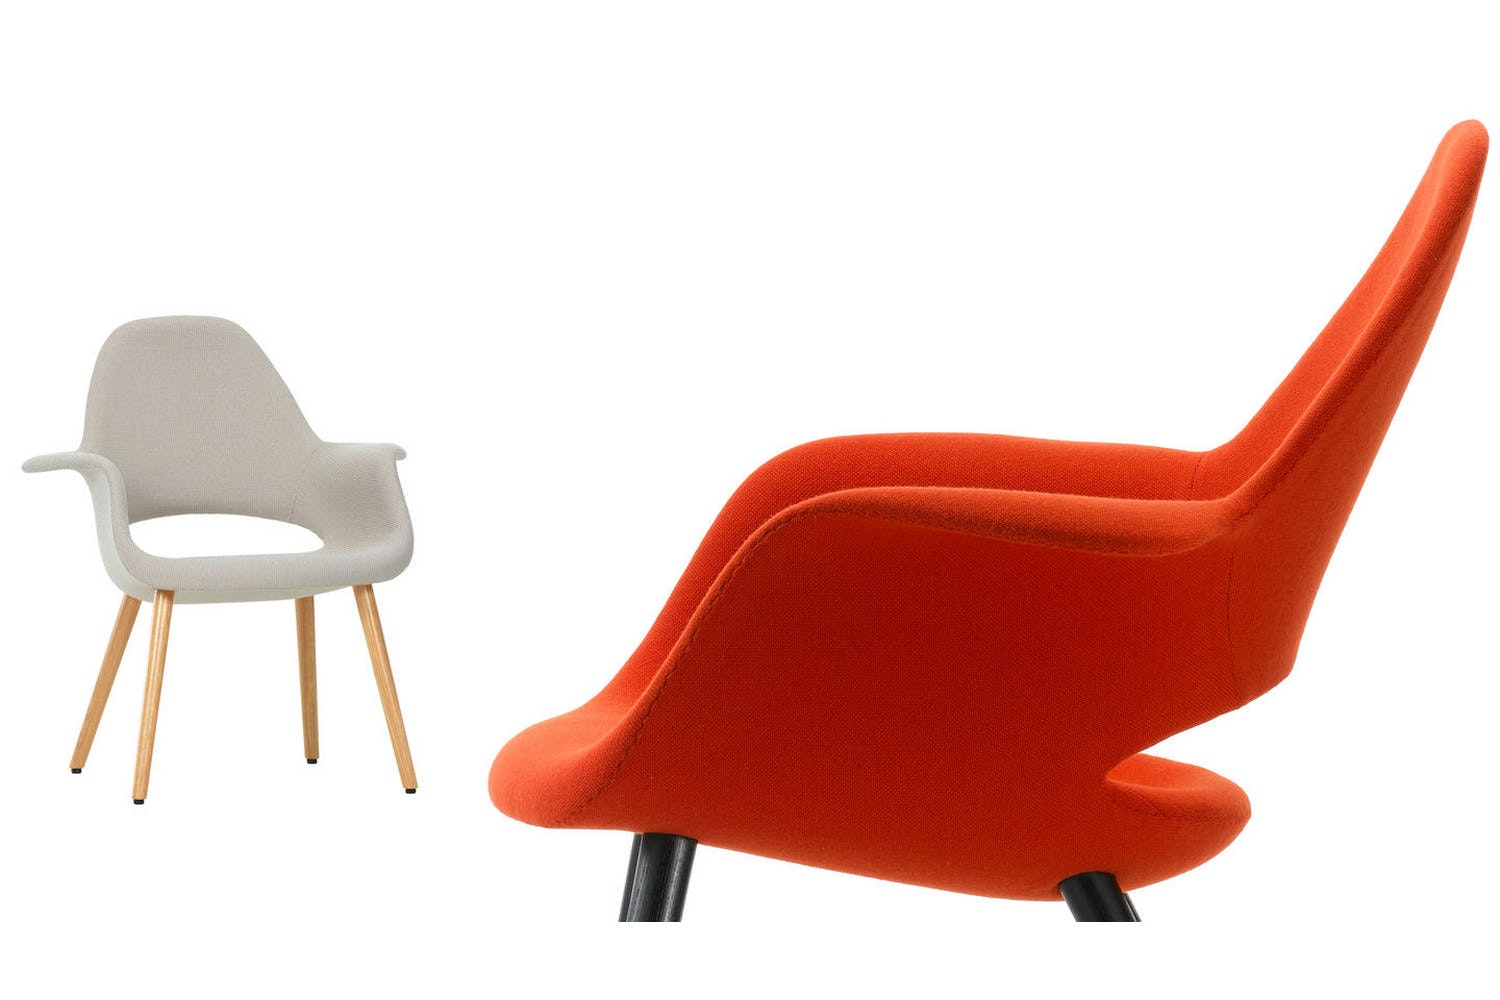 Organic Chair by Charles Eames & Eero Saarinen for Vitra